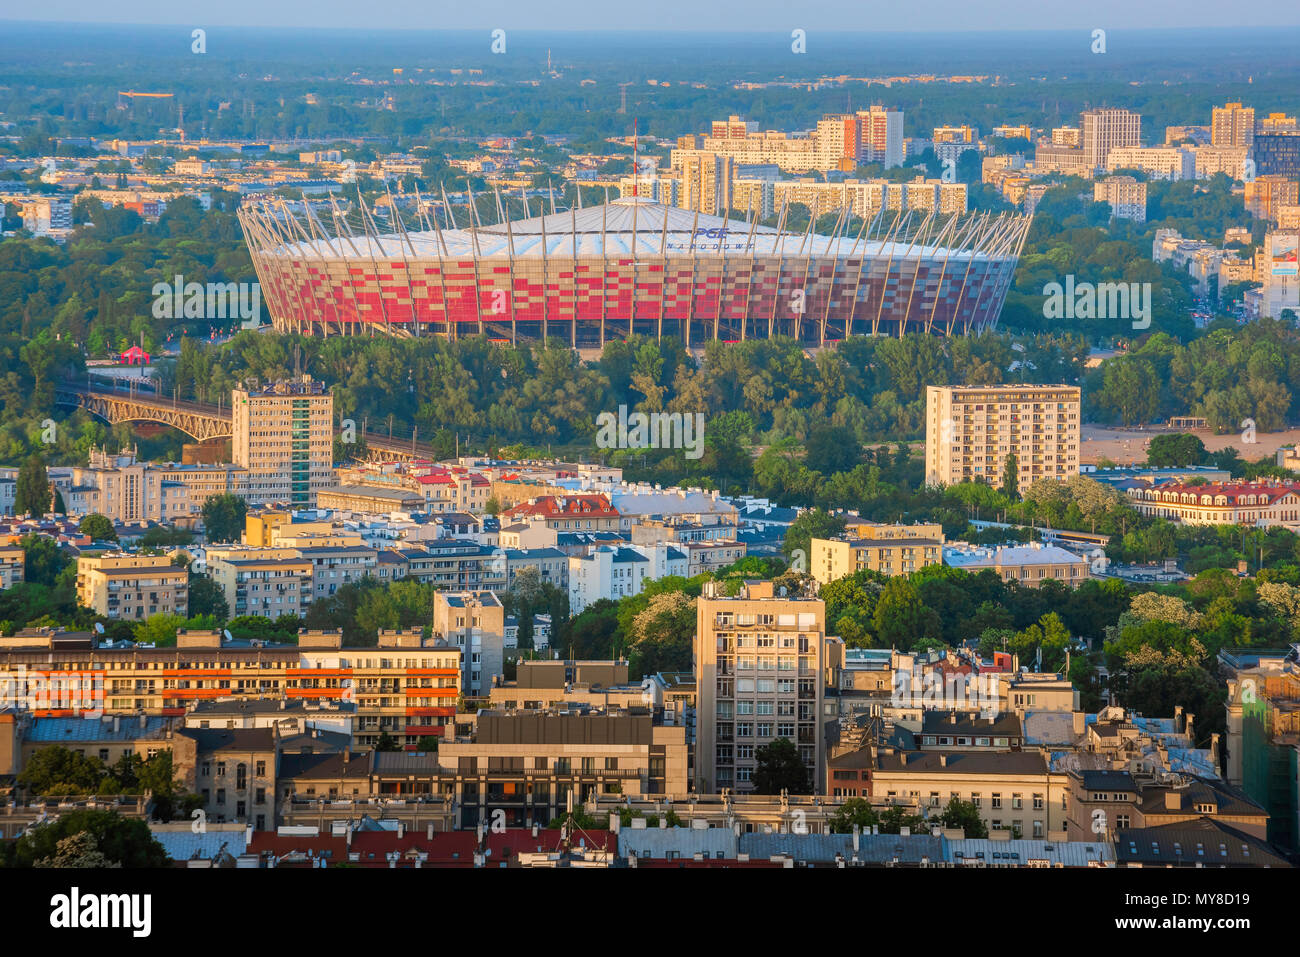 View of the Polish national football stadium (Stadion Narodowy) in the Praga district of Warsaw, Poland. - Stock Image